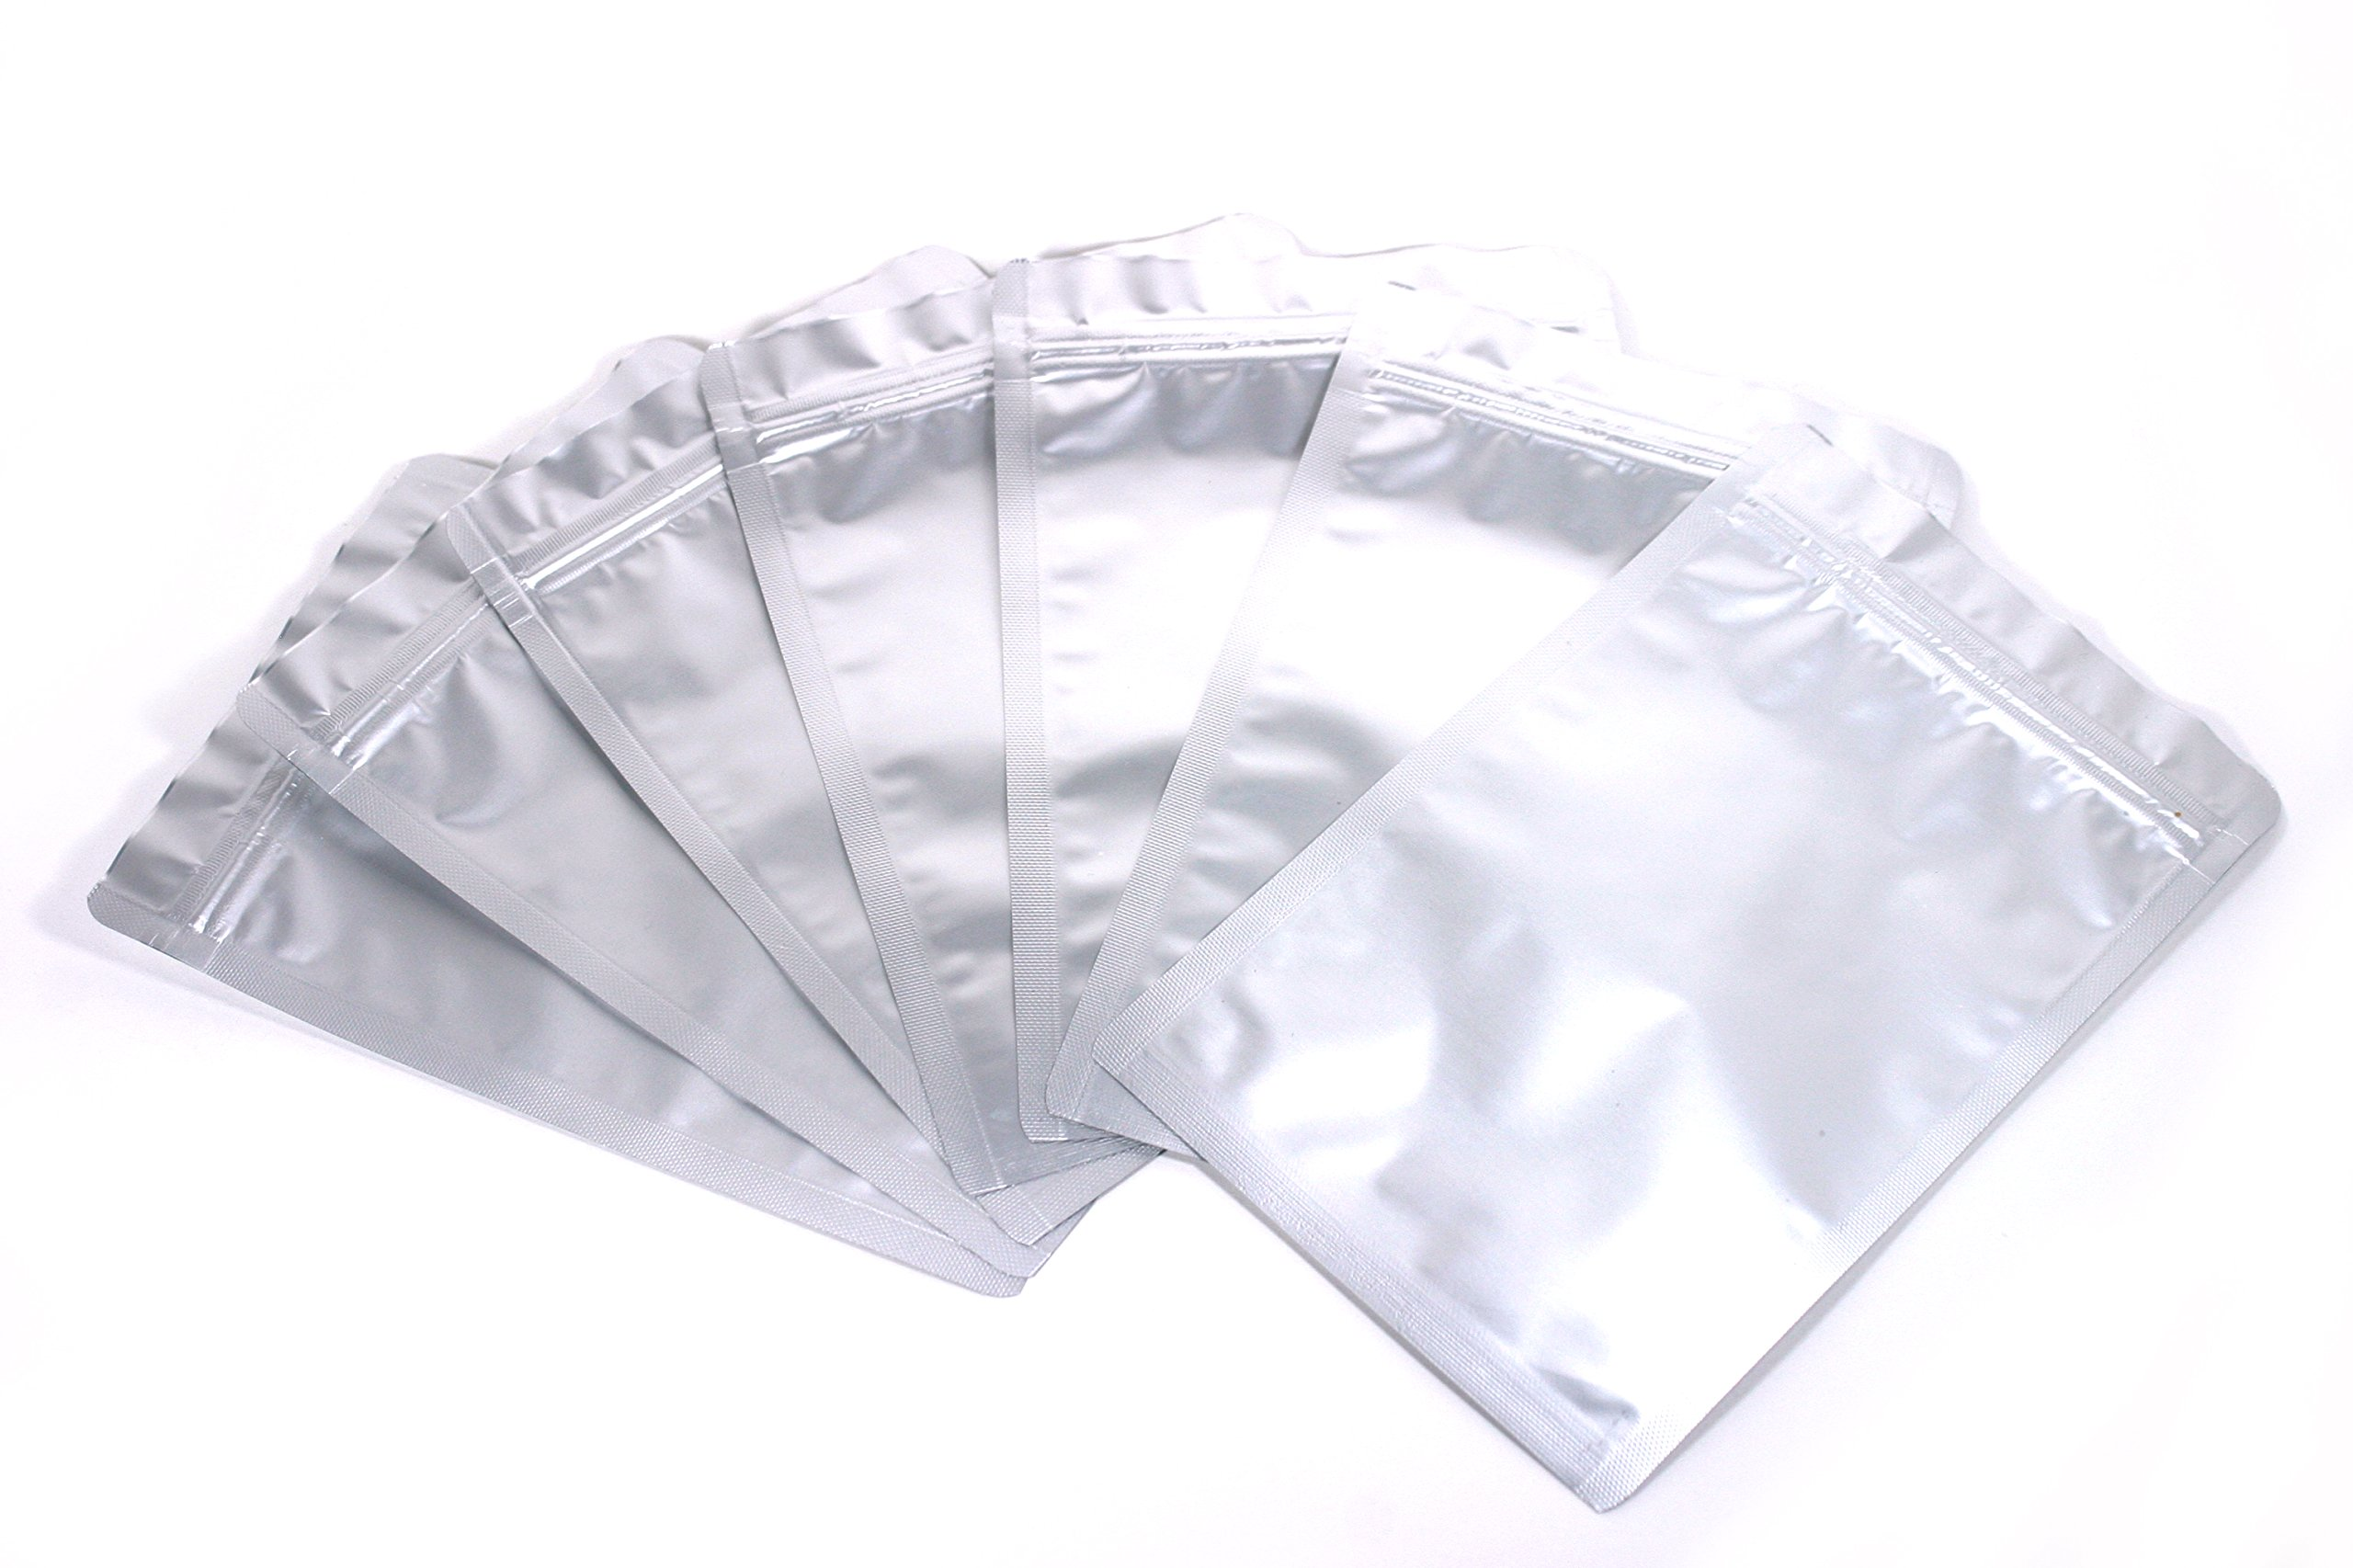 DSM&T Mylar Bags Ziplock Long Term Food Storage Silver 7.5x11.5 Inch 50pcs